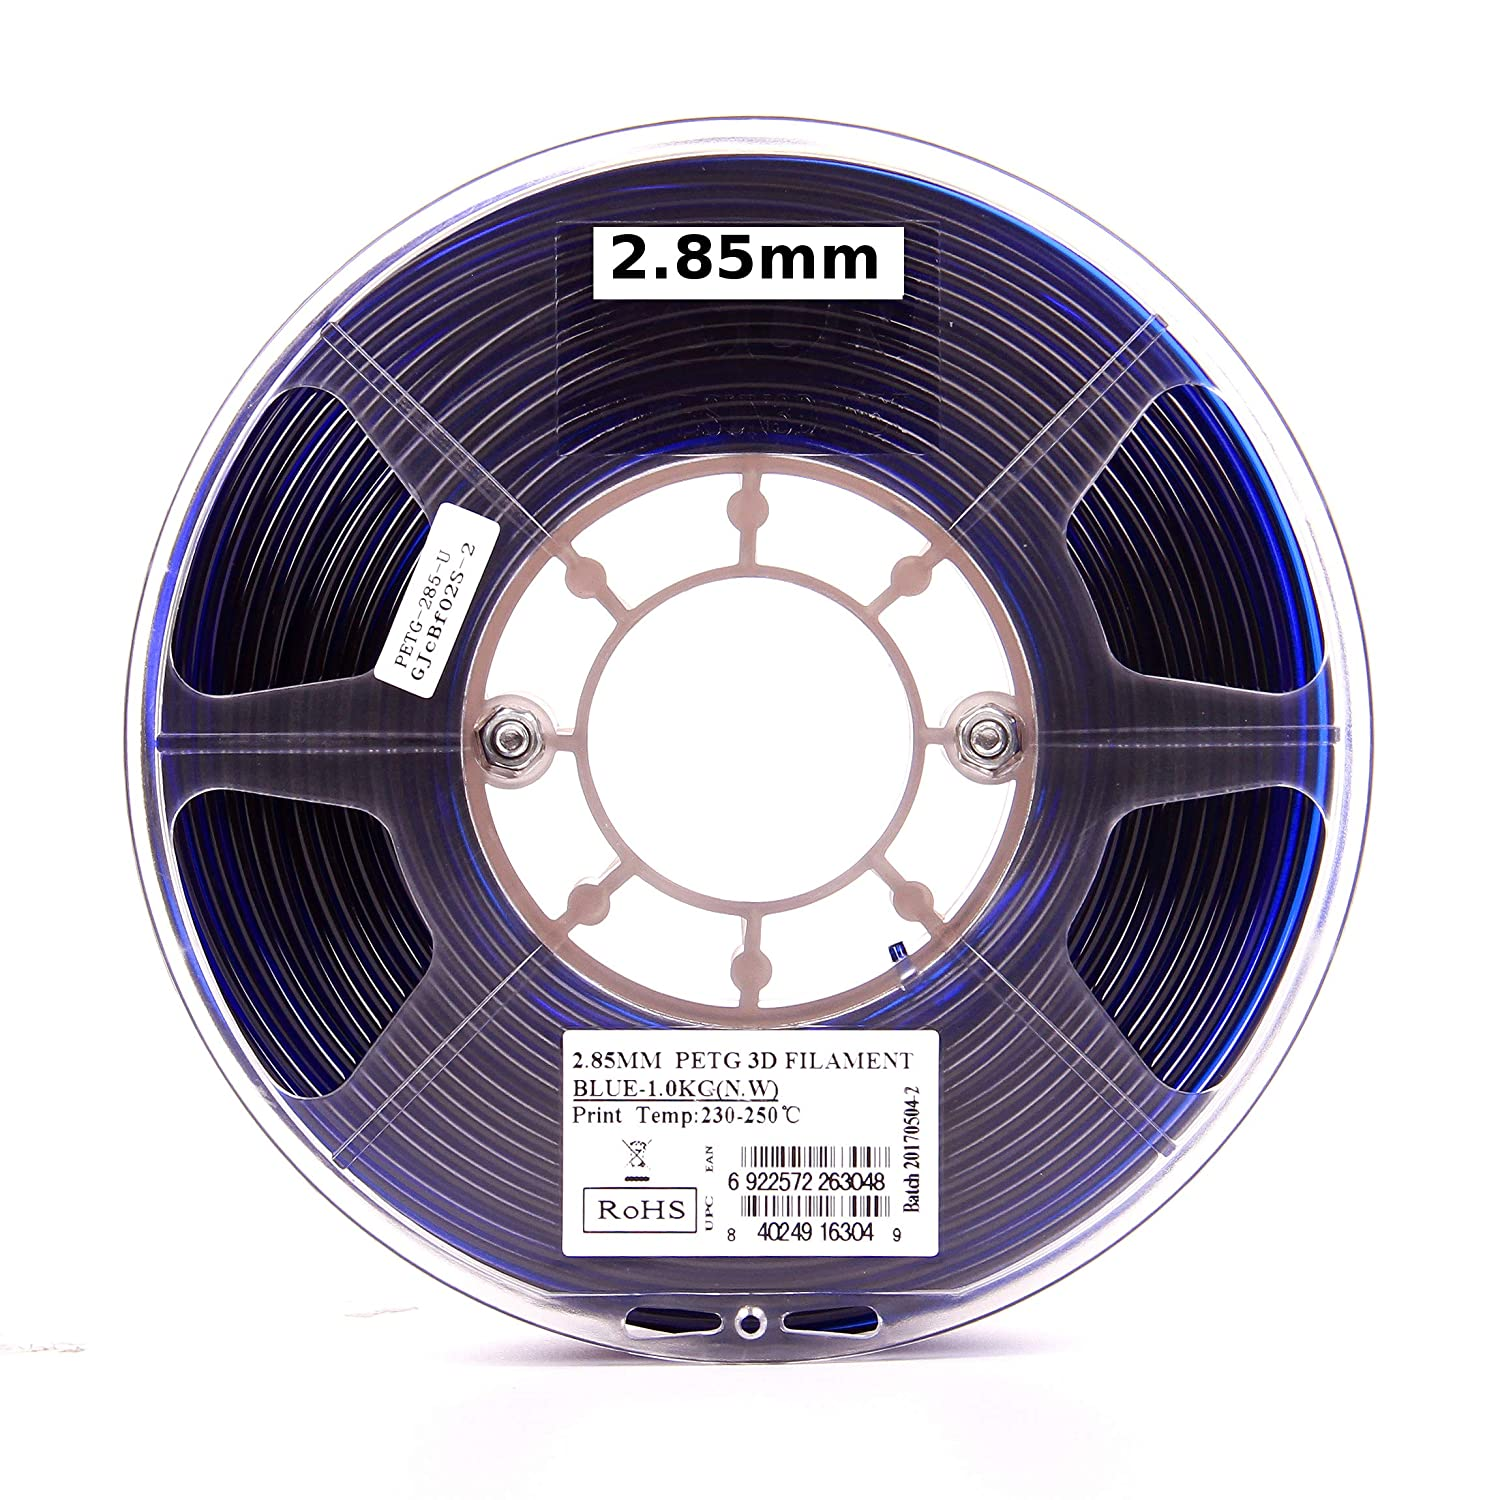 eSUN 3D 3mm PETG Blue Filament 1kg Semi-transparent Blue PETG175U1 Actual Diameter 2.85mm +//- 0.05mm PETG 3D Printer Filament 2.2lb